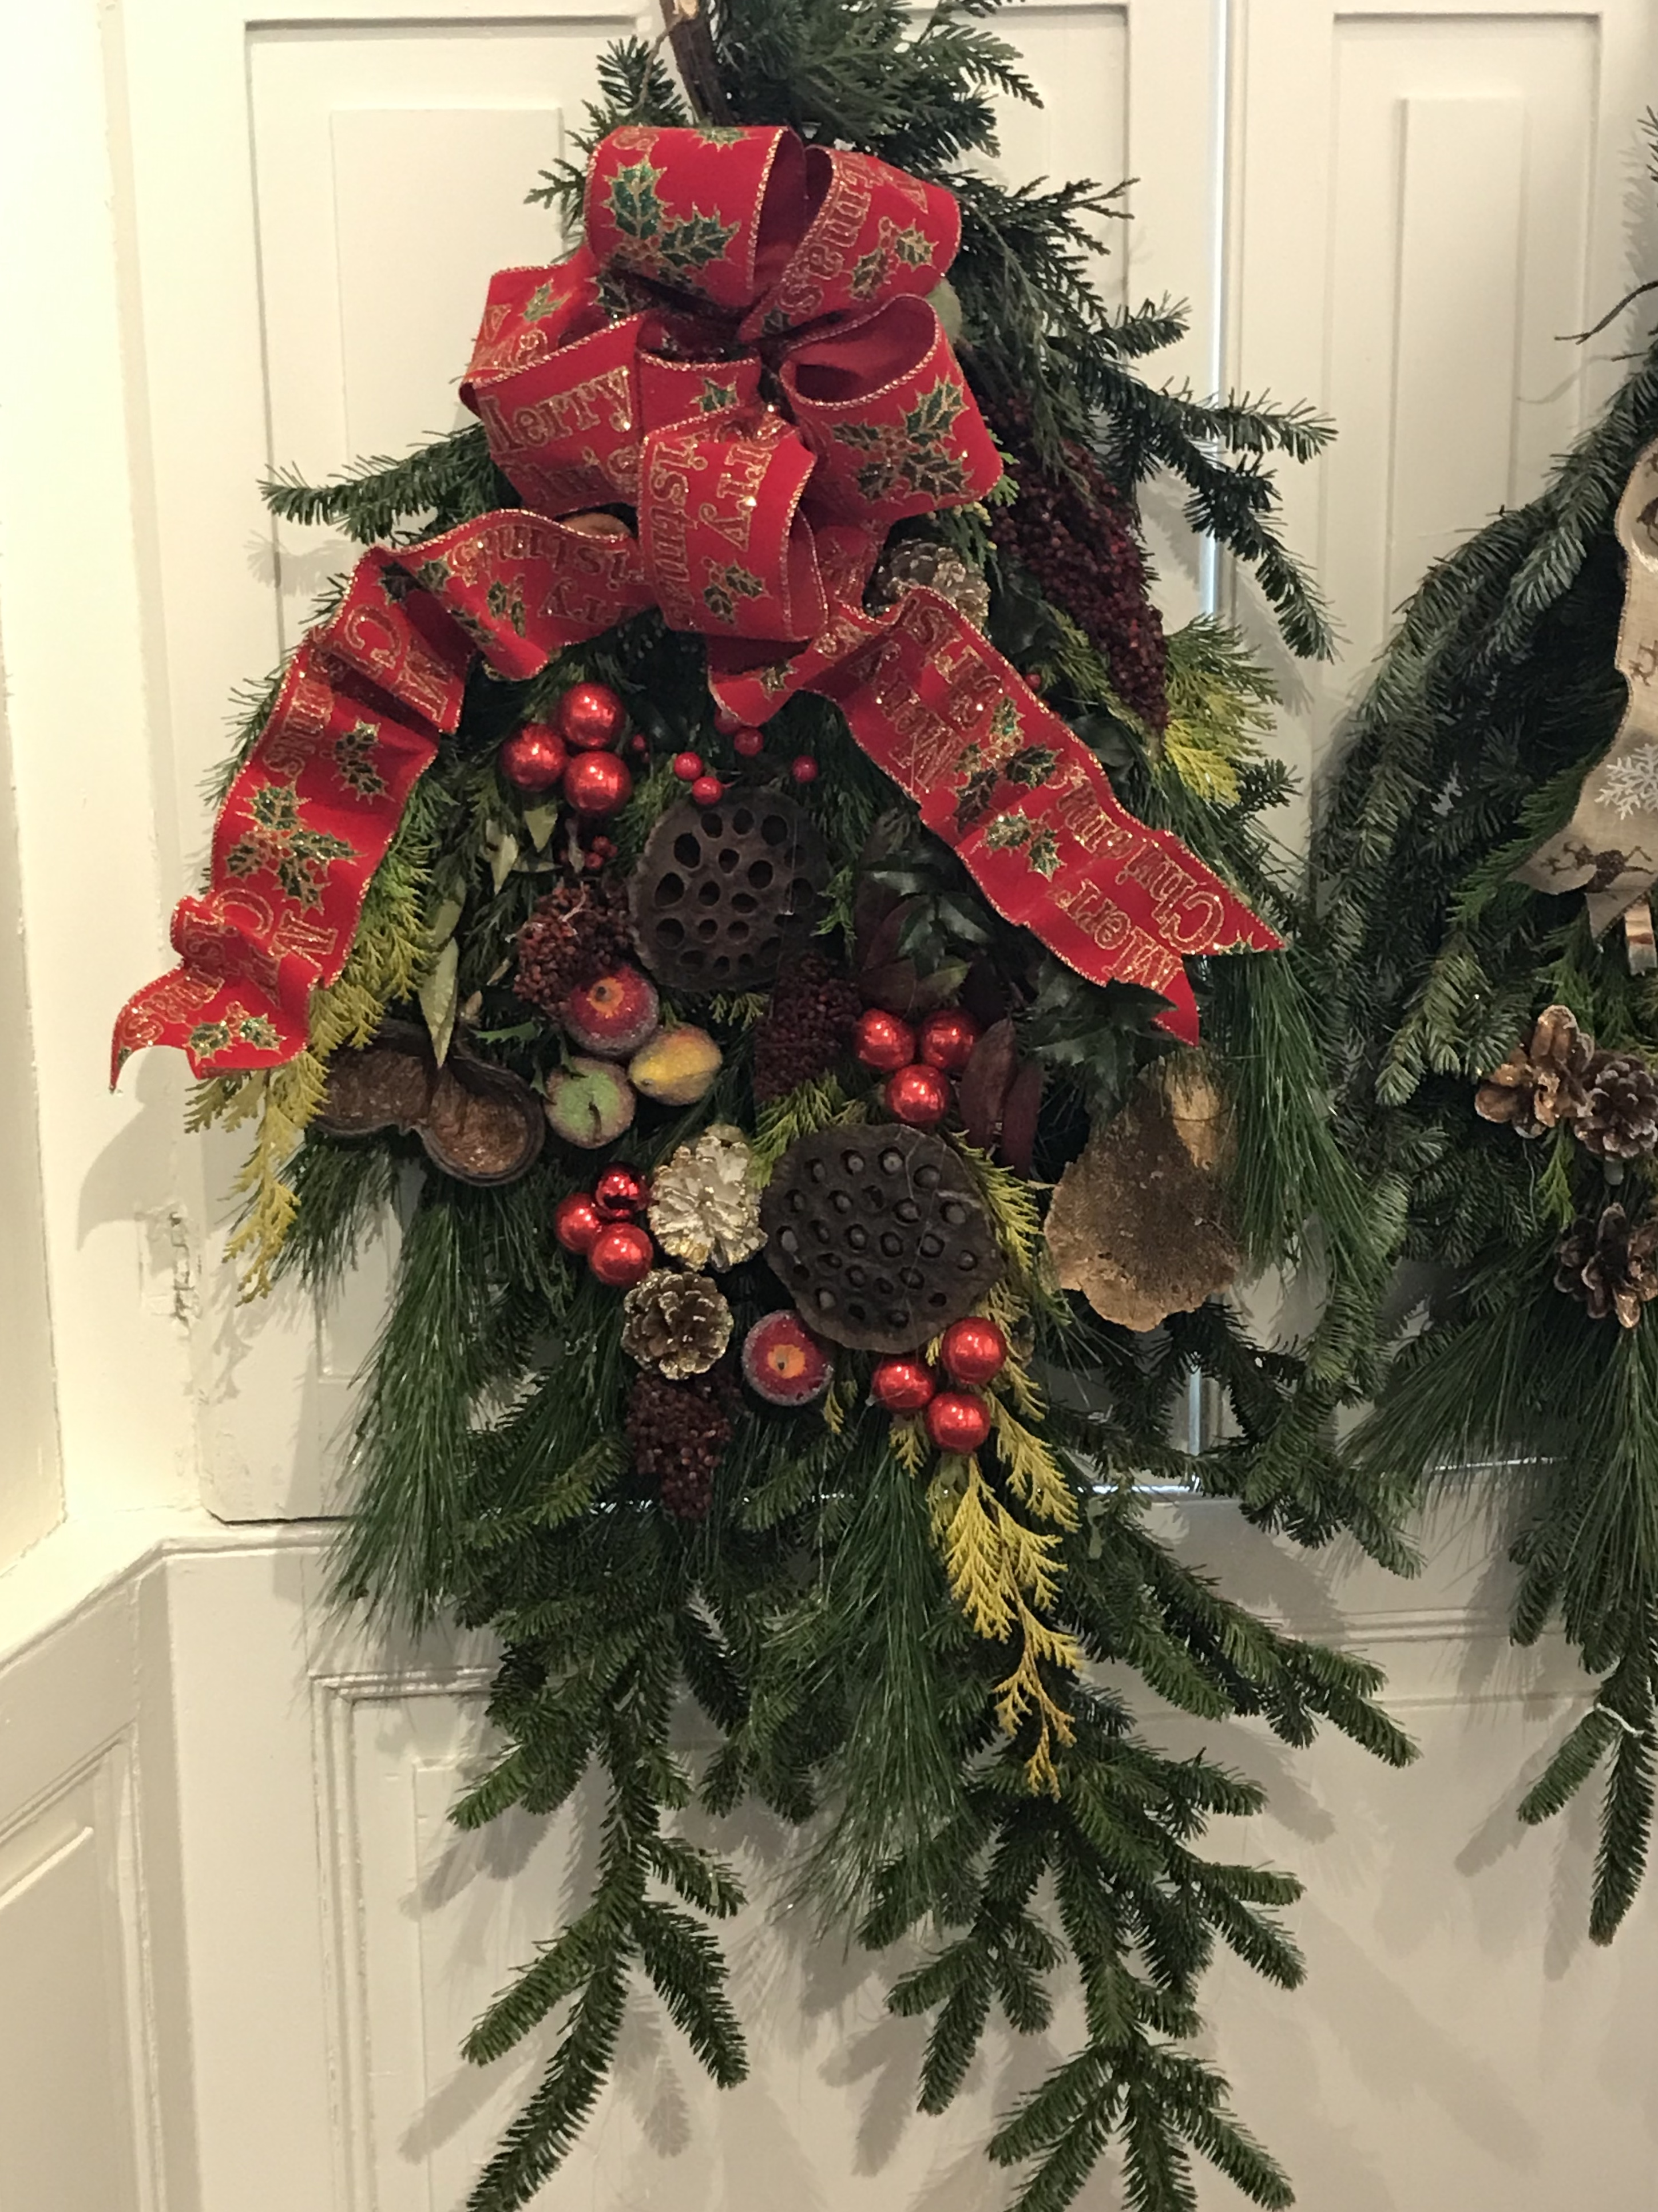 Annual Holiday Events Fill First Weekend of December in Southbridge